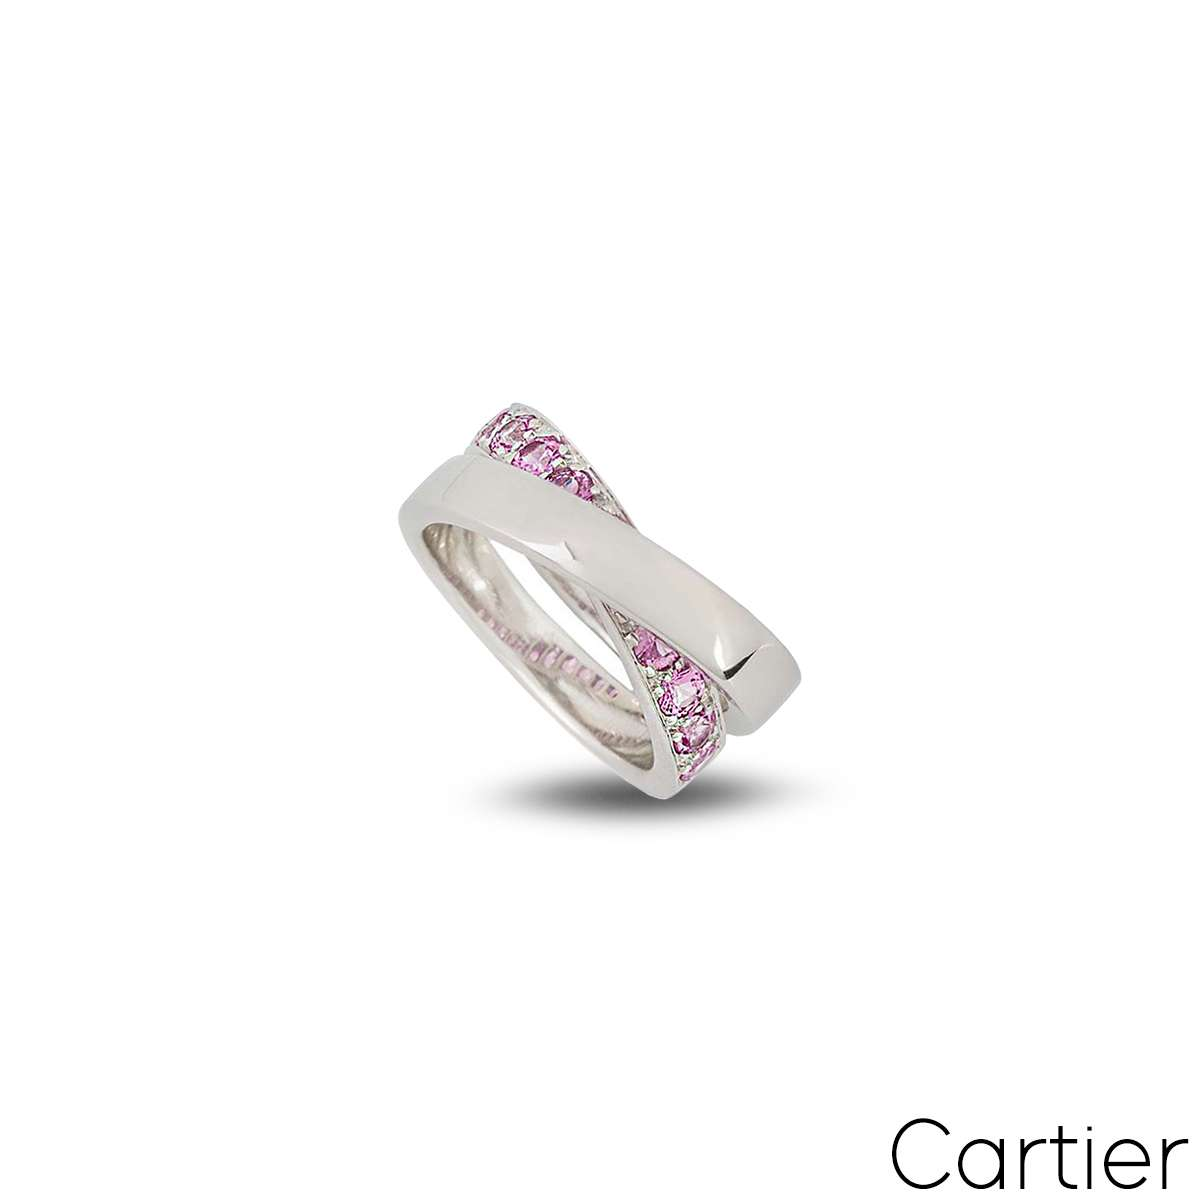 Cartier 18k White Gold Paris Nouvelle Vague Pink Sapphire Ring Size 49